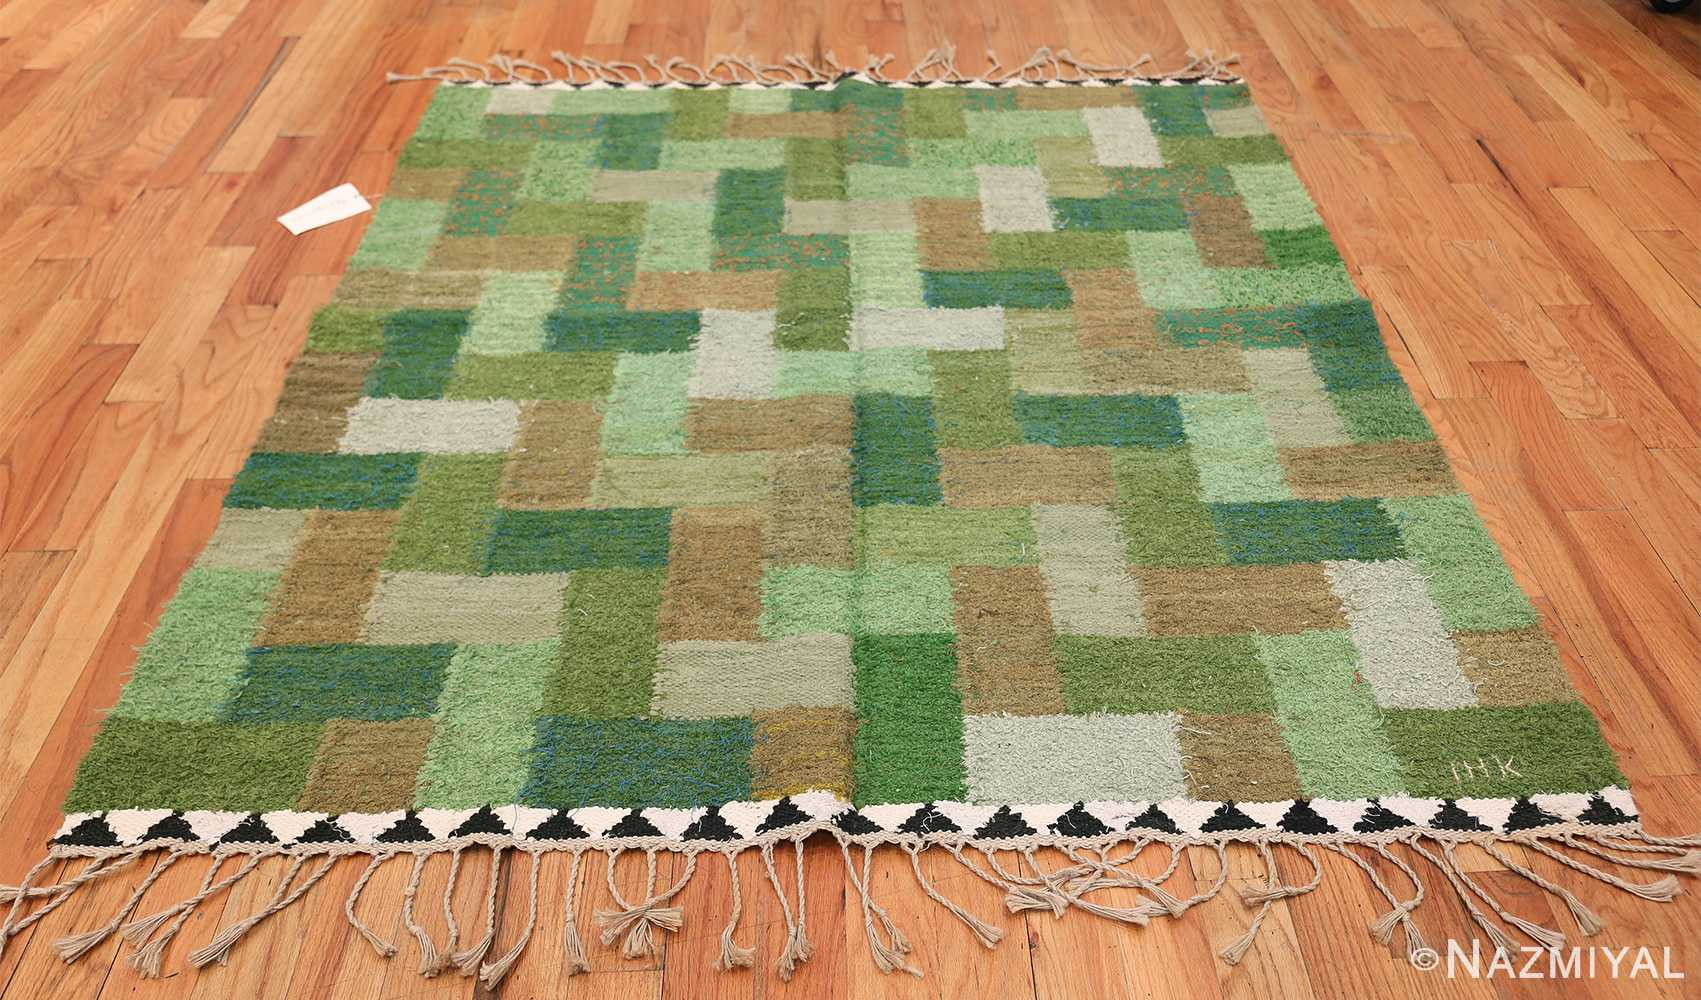 Vintage Scandinavian Swedish Rug by Ingrid Hellman Knafve 49114 Whole Design Nazmiyal